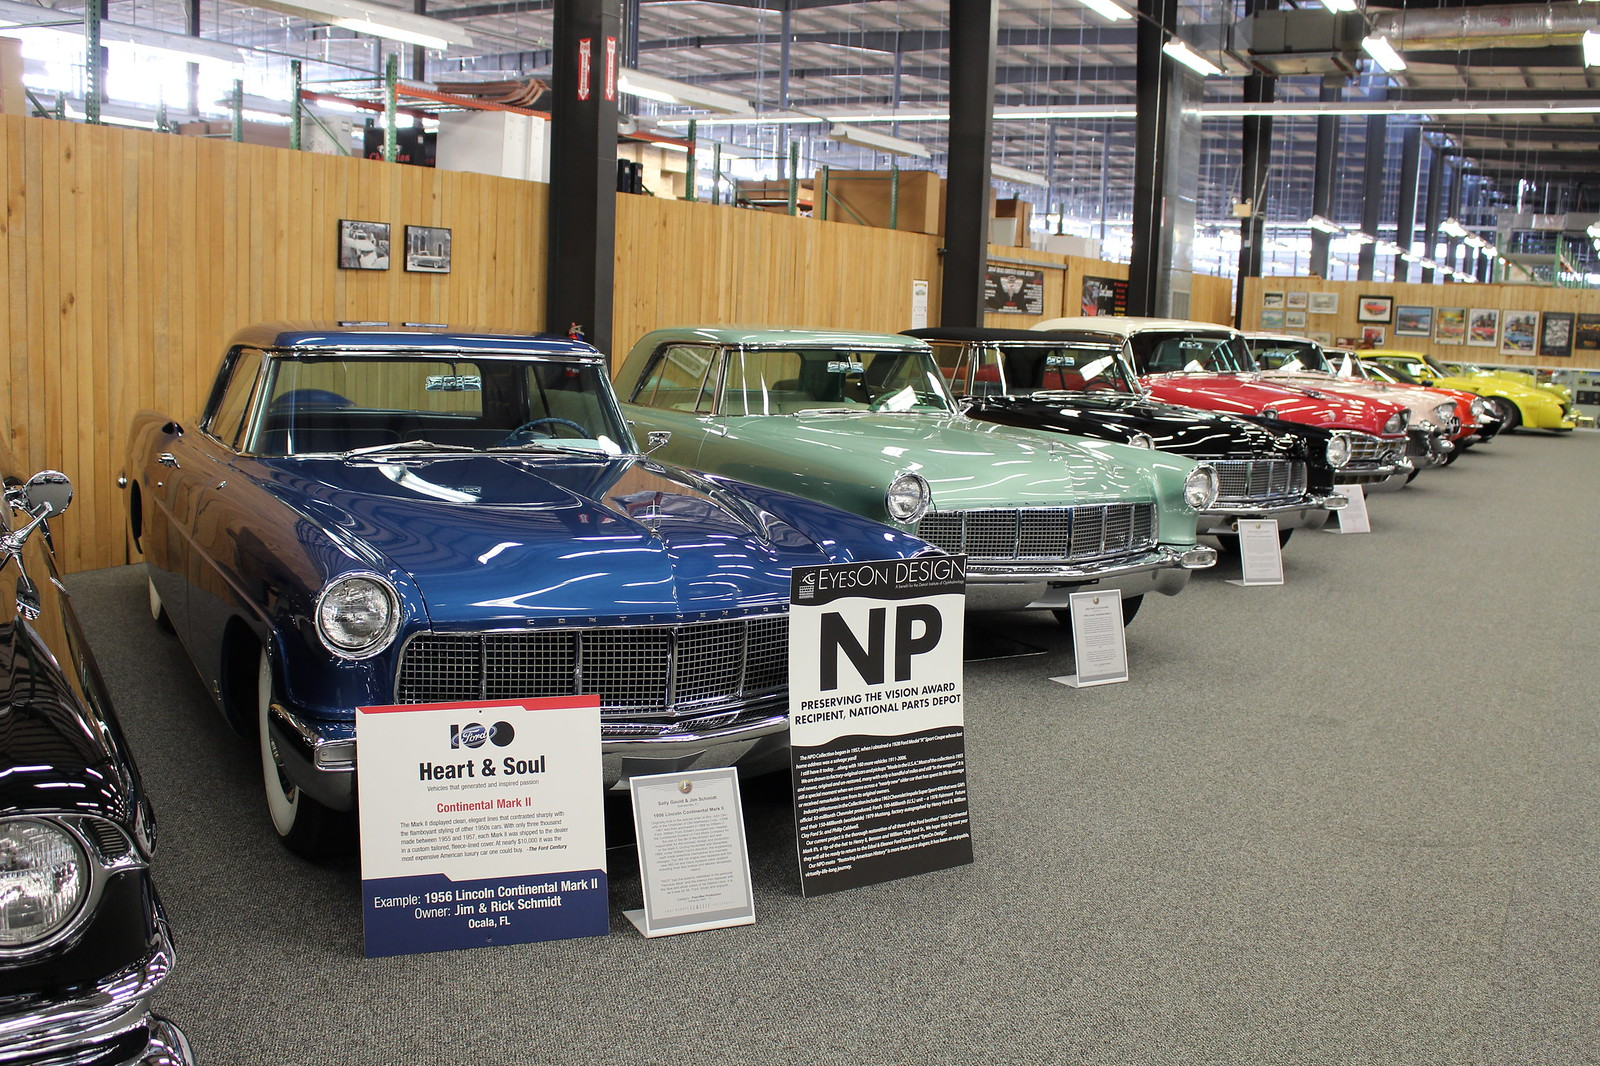 NPD Ocala Car Collection Photos - Mustang Owners Club of Great Britain